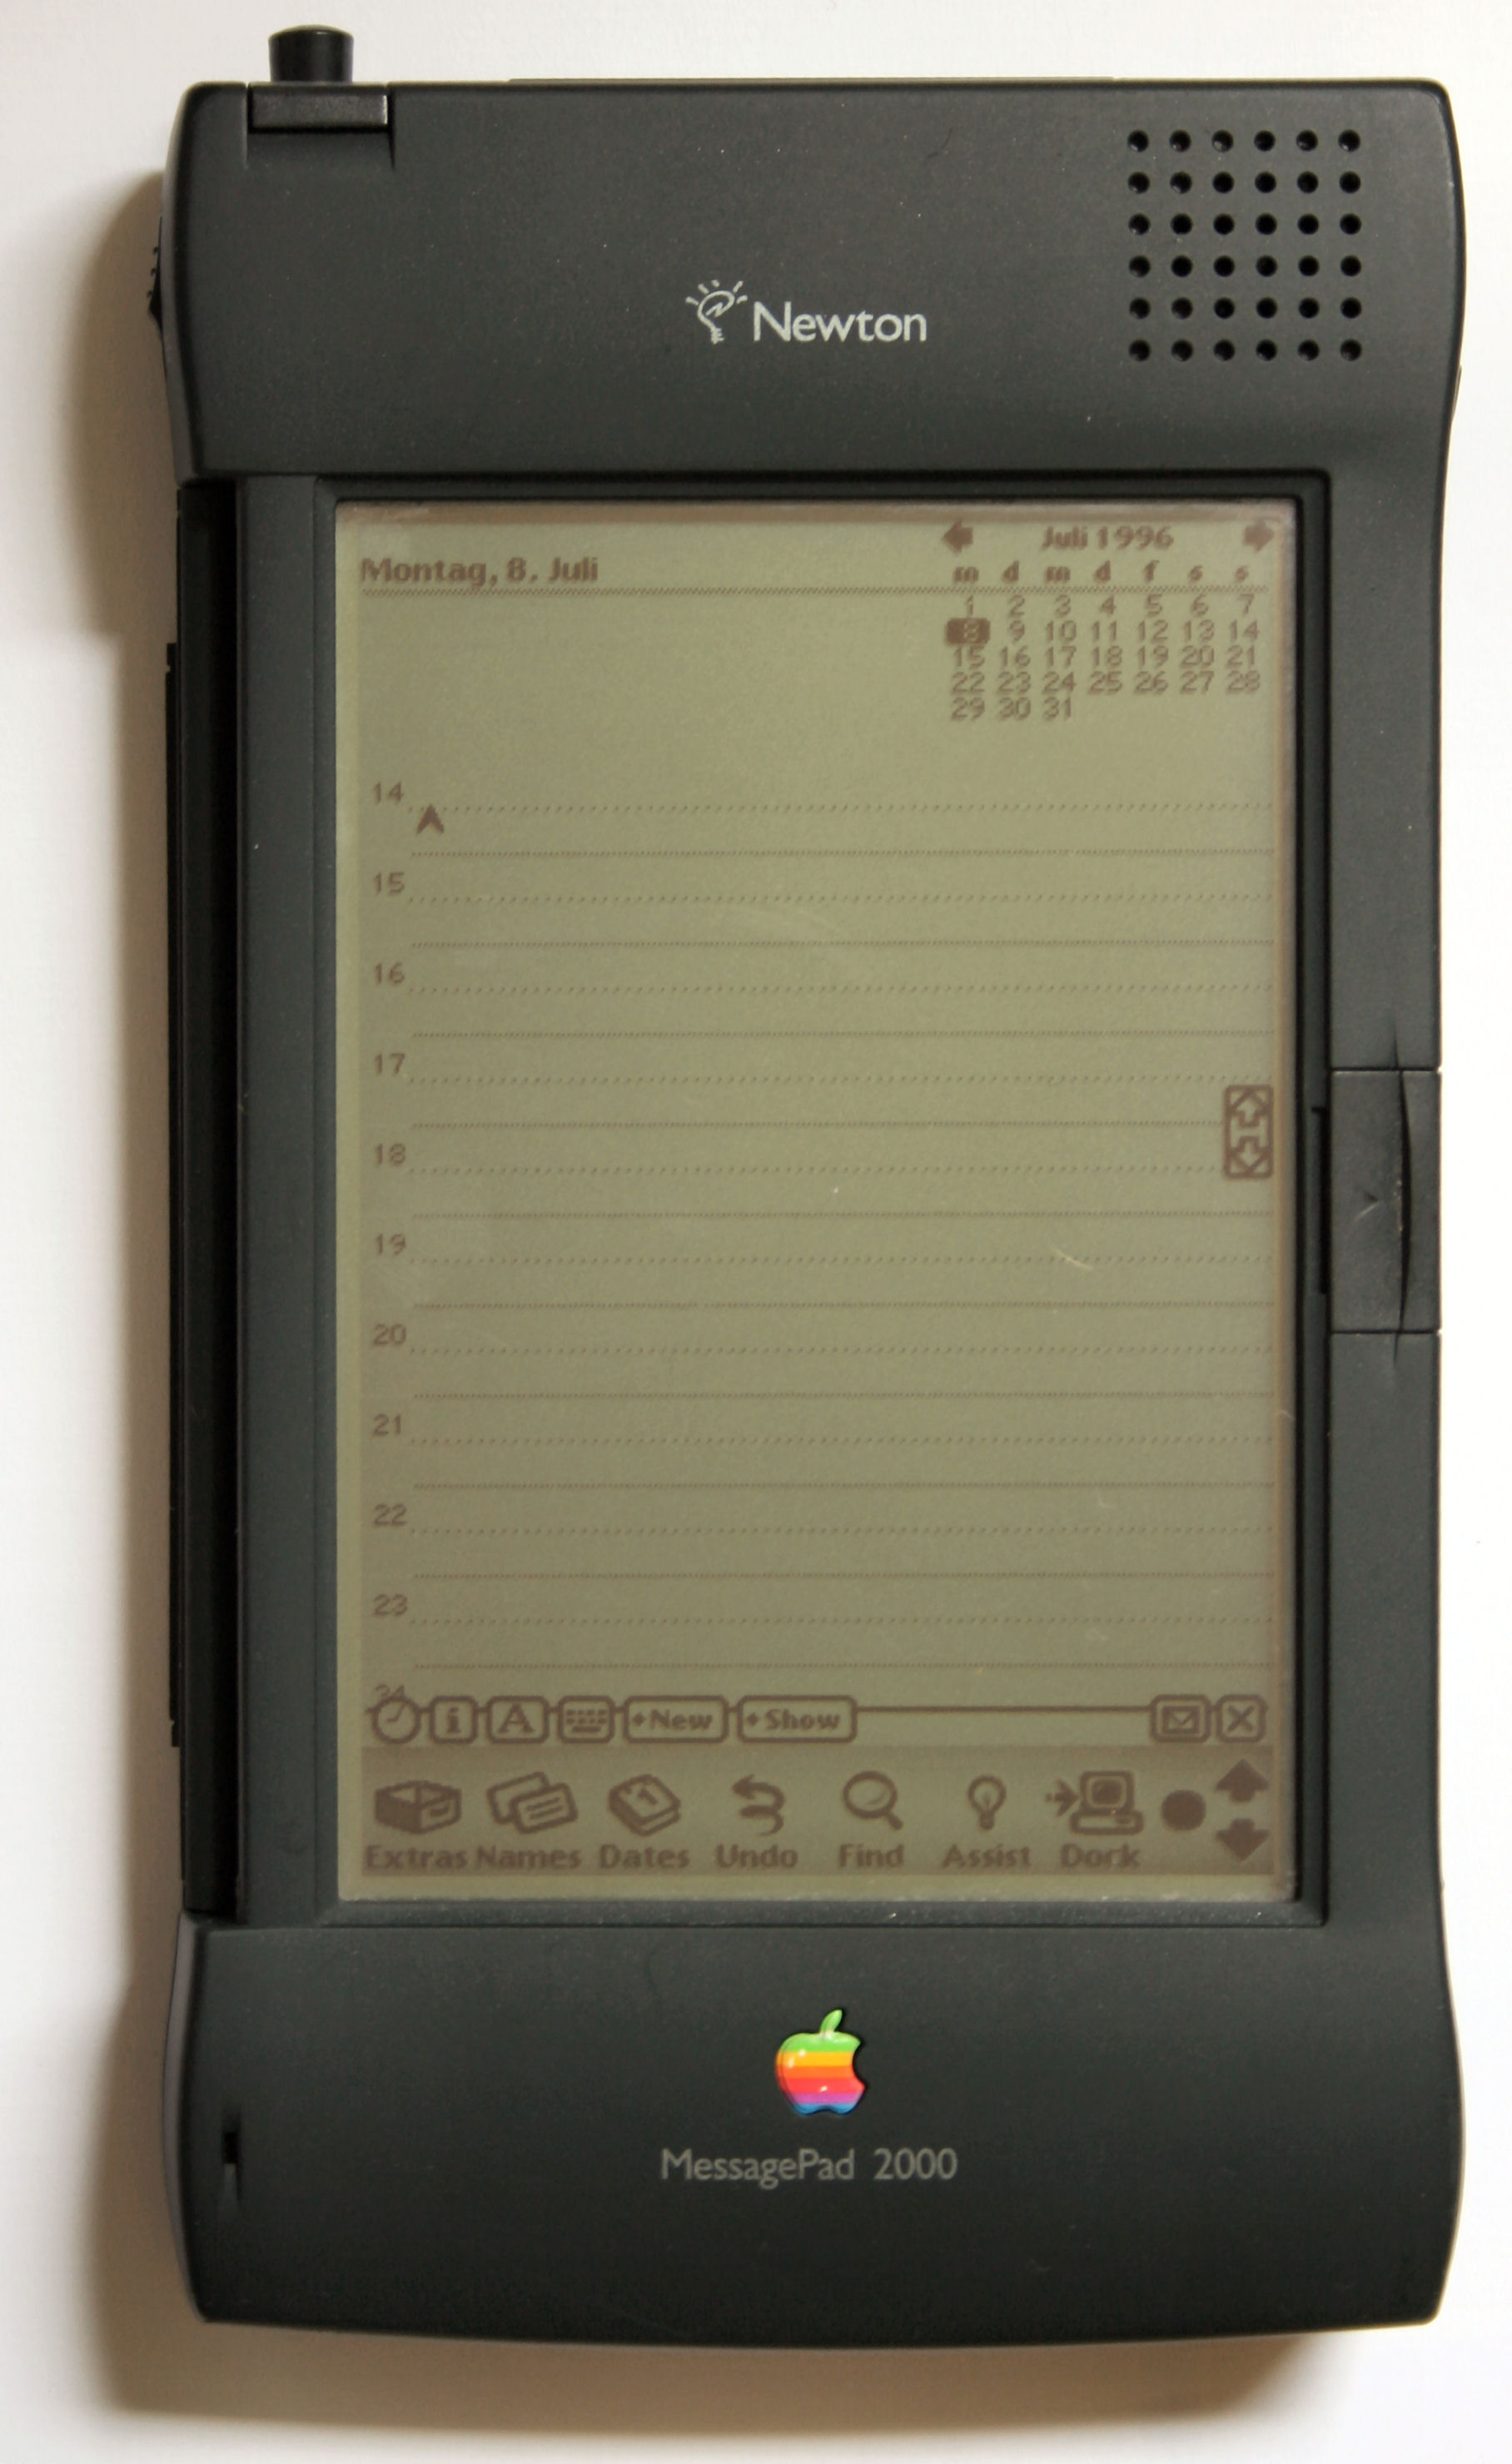 an analysis of apple and gateway 2000 In the mid- to late 2000s, nokia flourished as the world's dominant mobile phone  – and  of 2013, apple had captured almost 40 percent of the us smartphone   form that would provide books, music, movies, news, financial analysis  itif copy   three times greater than then-competitor gateway was generating per store.